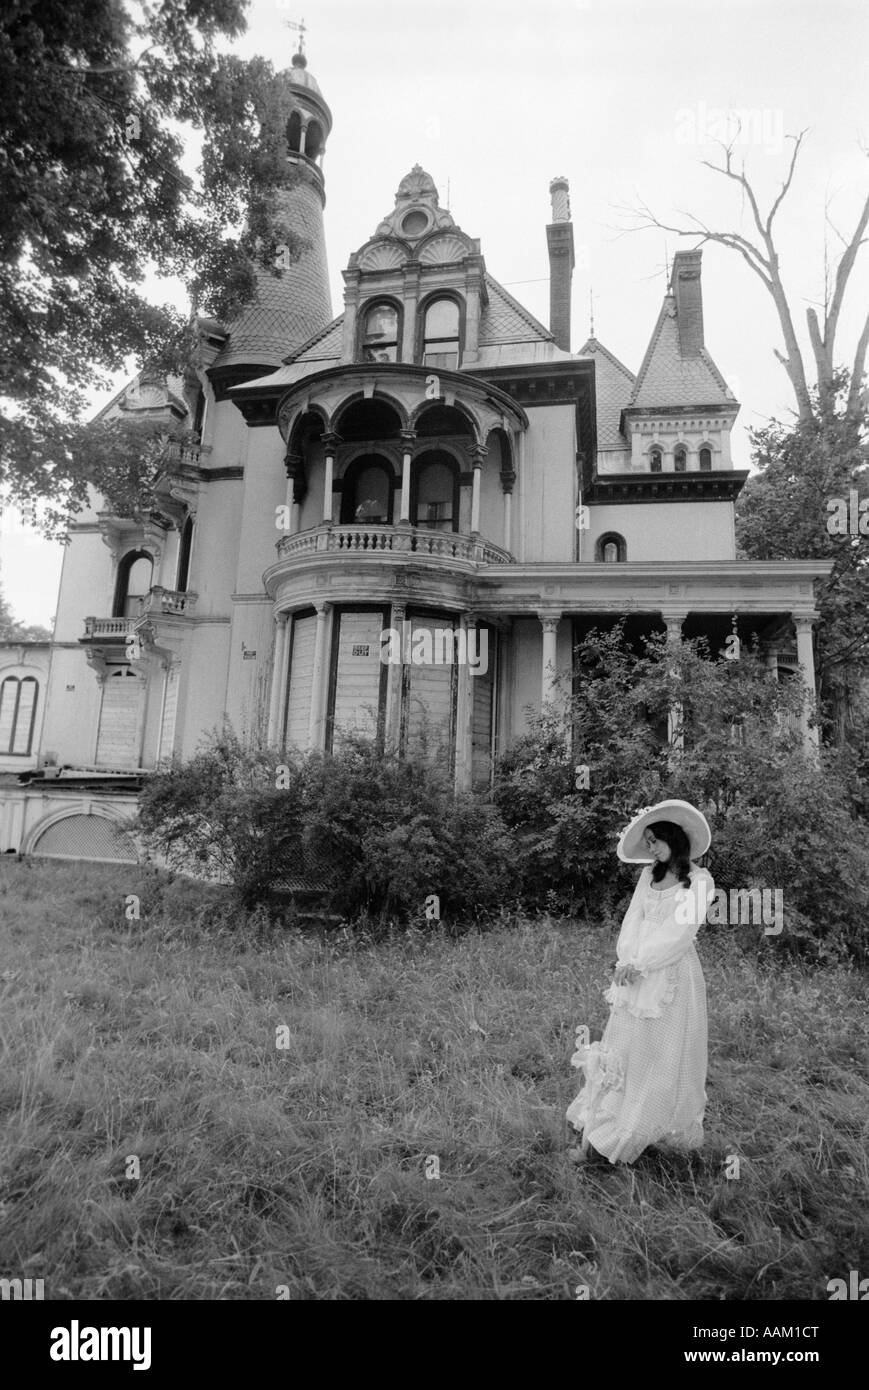 WOMAN IN VICTORIAN COSTUME STANDING ON FRONT LAWN OF LARGE VICTORIAN HOME - Stock Image